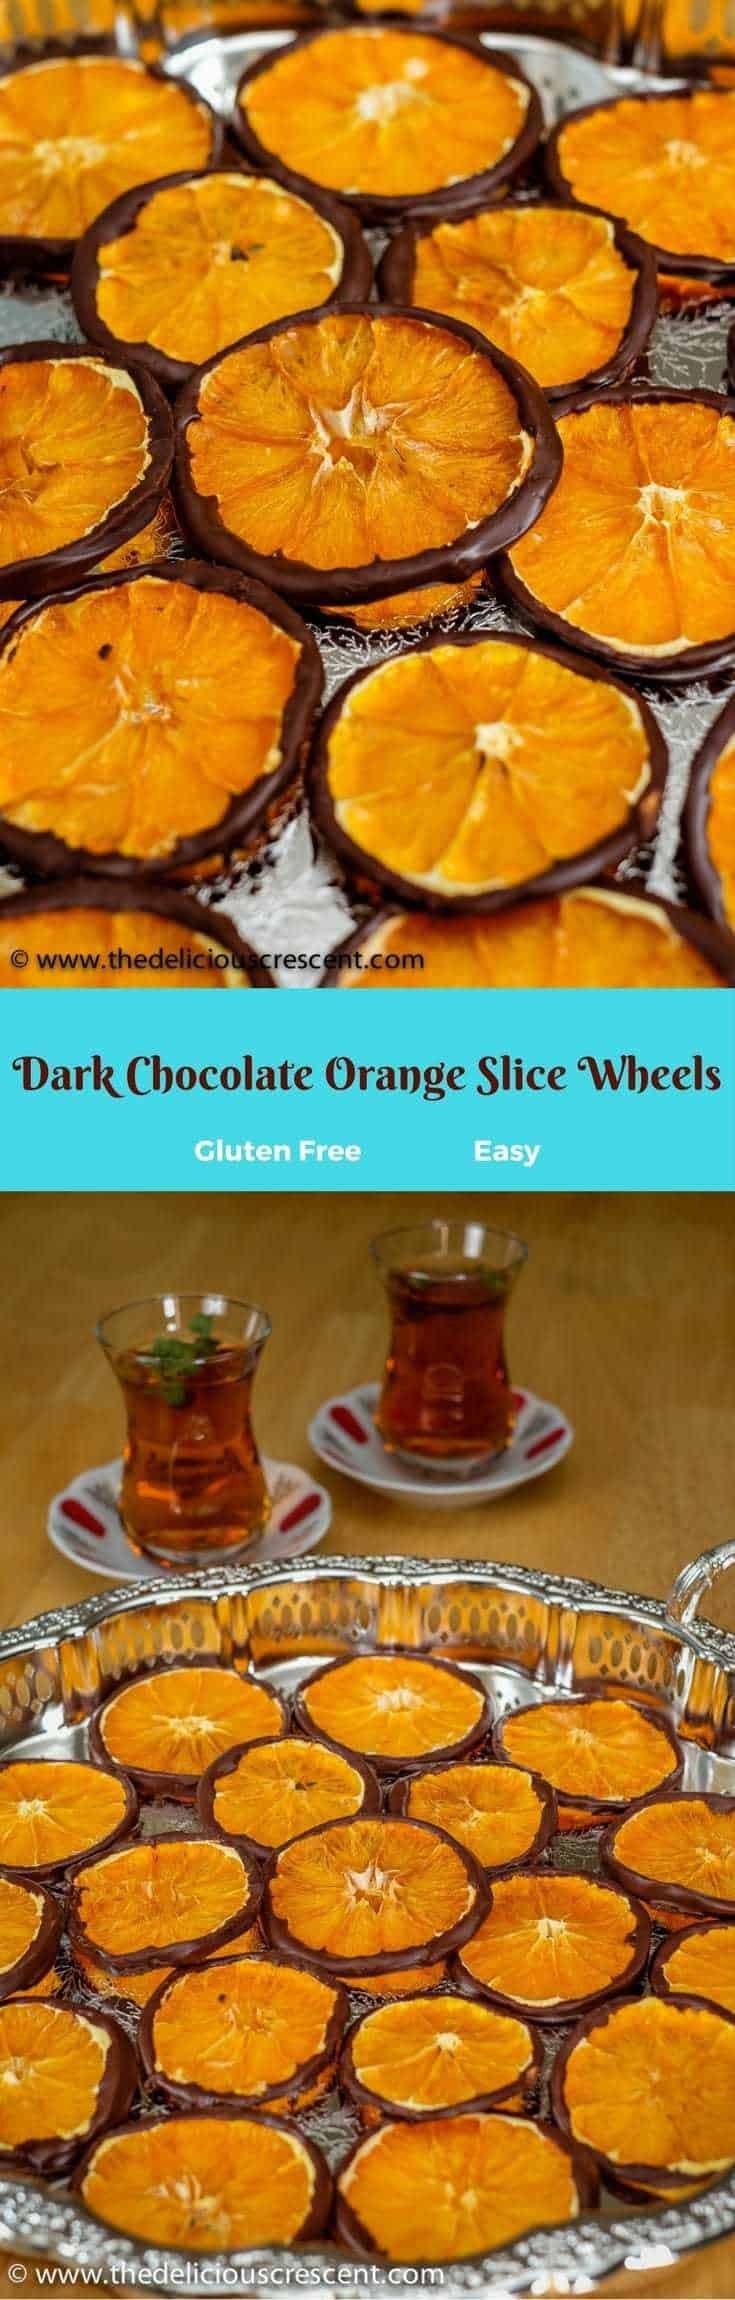 Dark Chocolate Orange Slice Wheels are an elegant treat with decadence in every bite. So easy, healthy and delicious tangy-sweet treat!